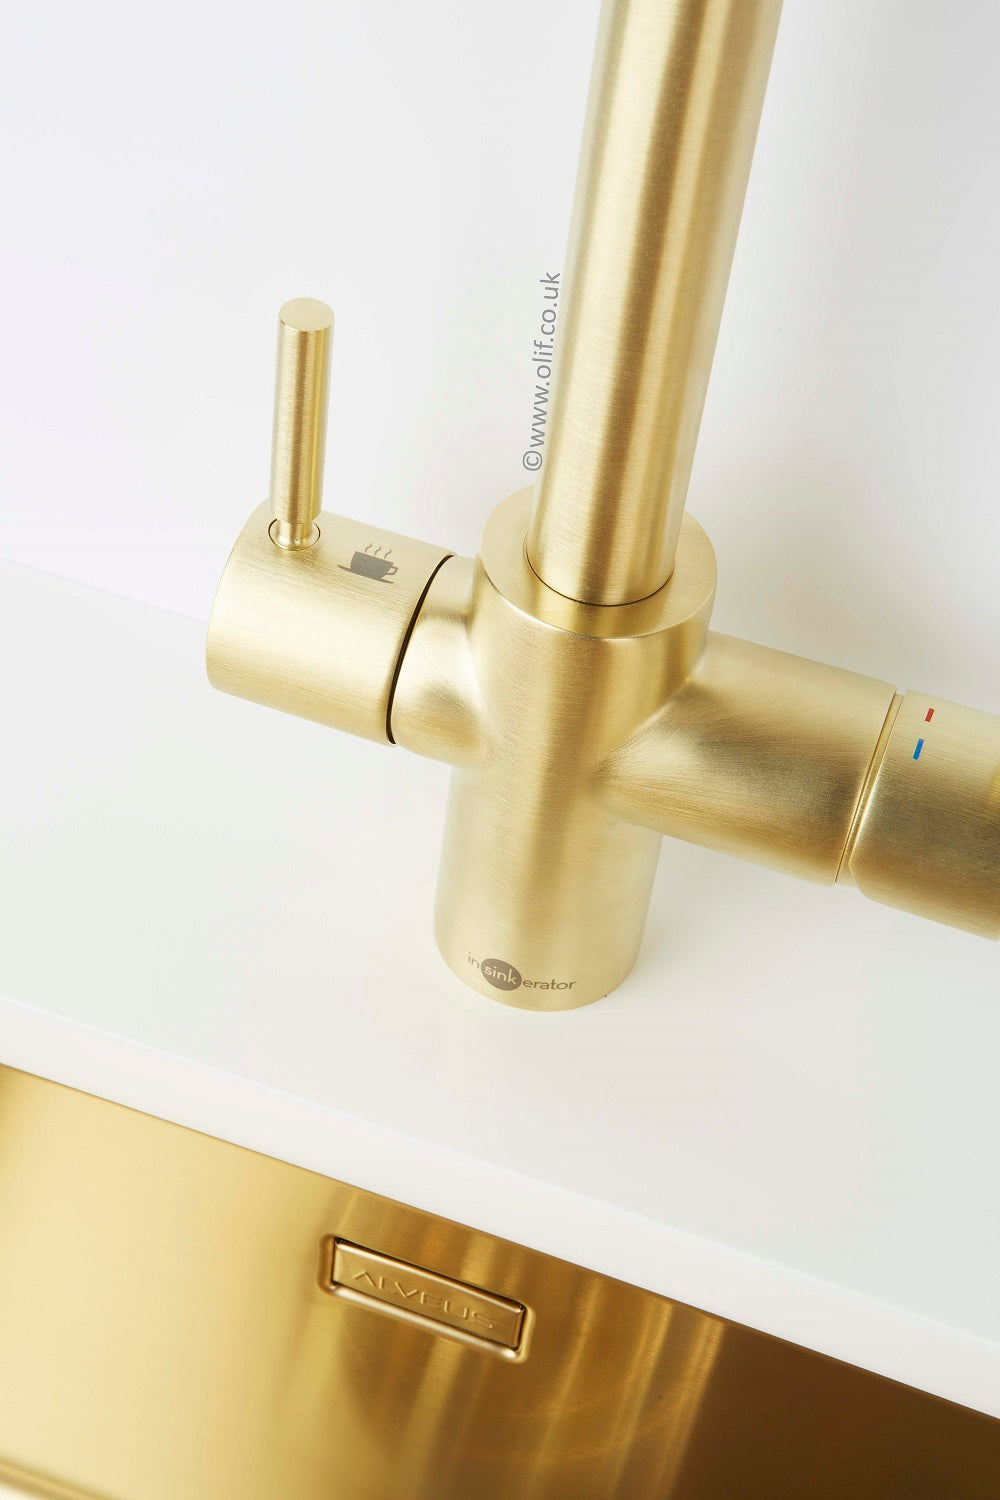 Instant Hot Boiling Water tap, Brass/Gold finish